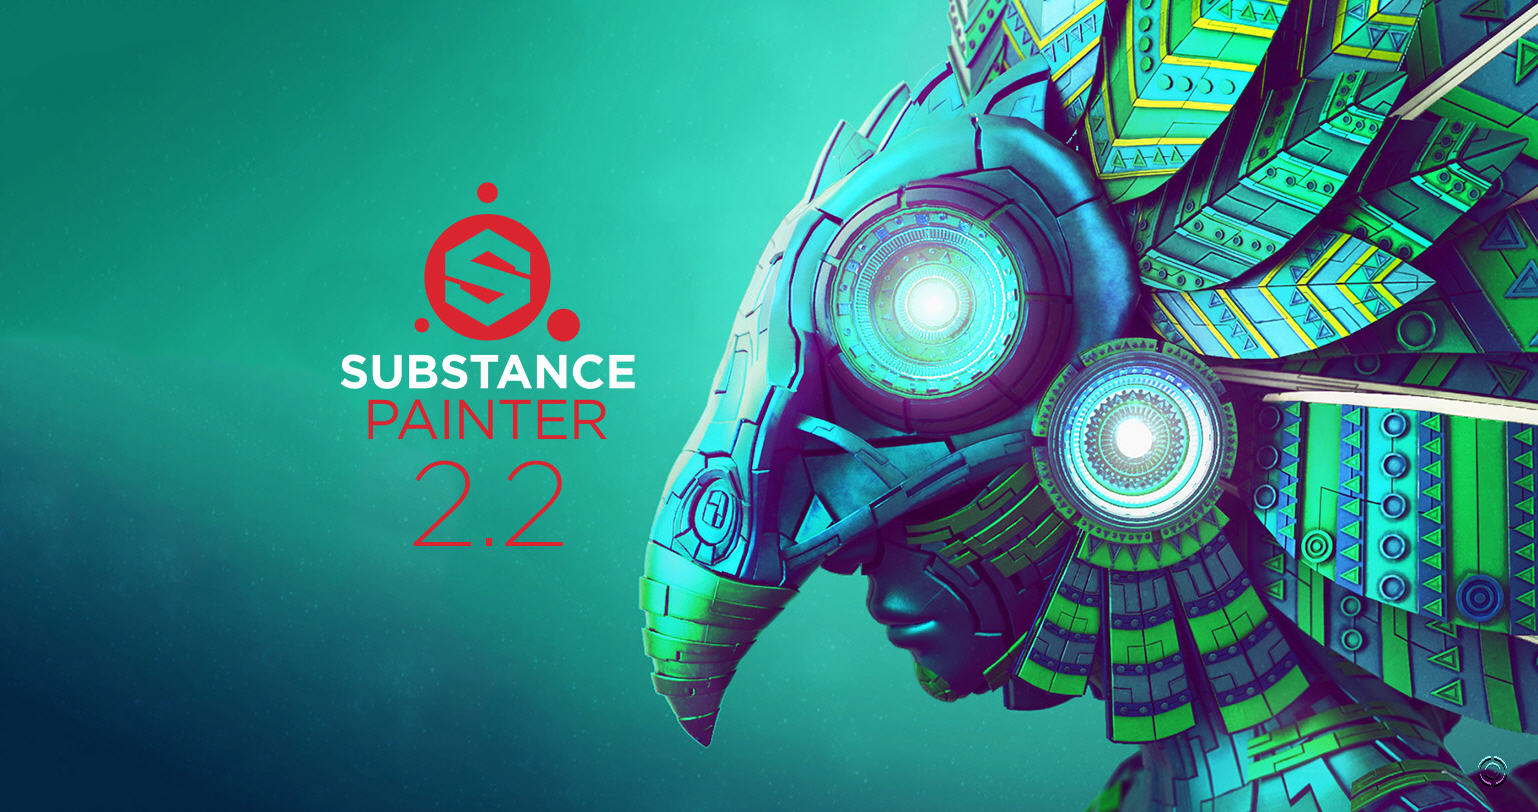 allegorithmic substance painter 2 2 cg daily news allegorithmic substance painter 2 2 homefeaturesoftware